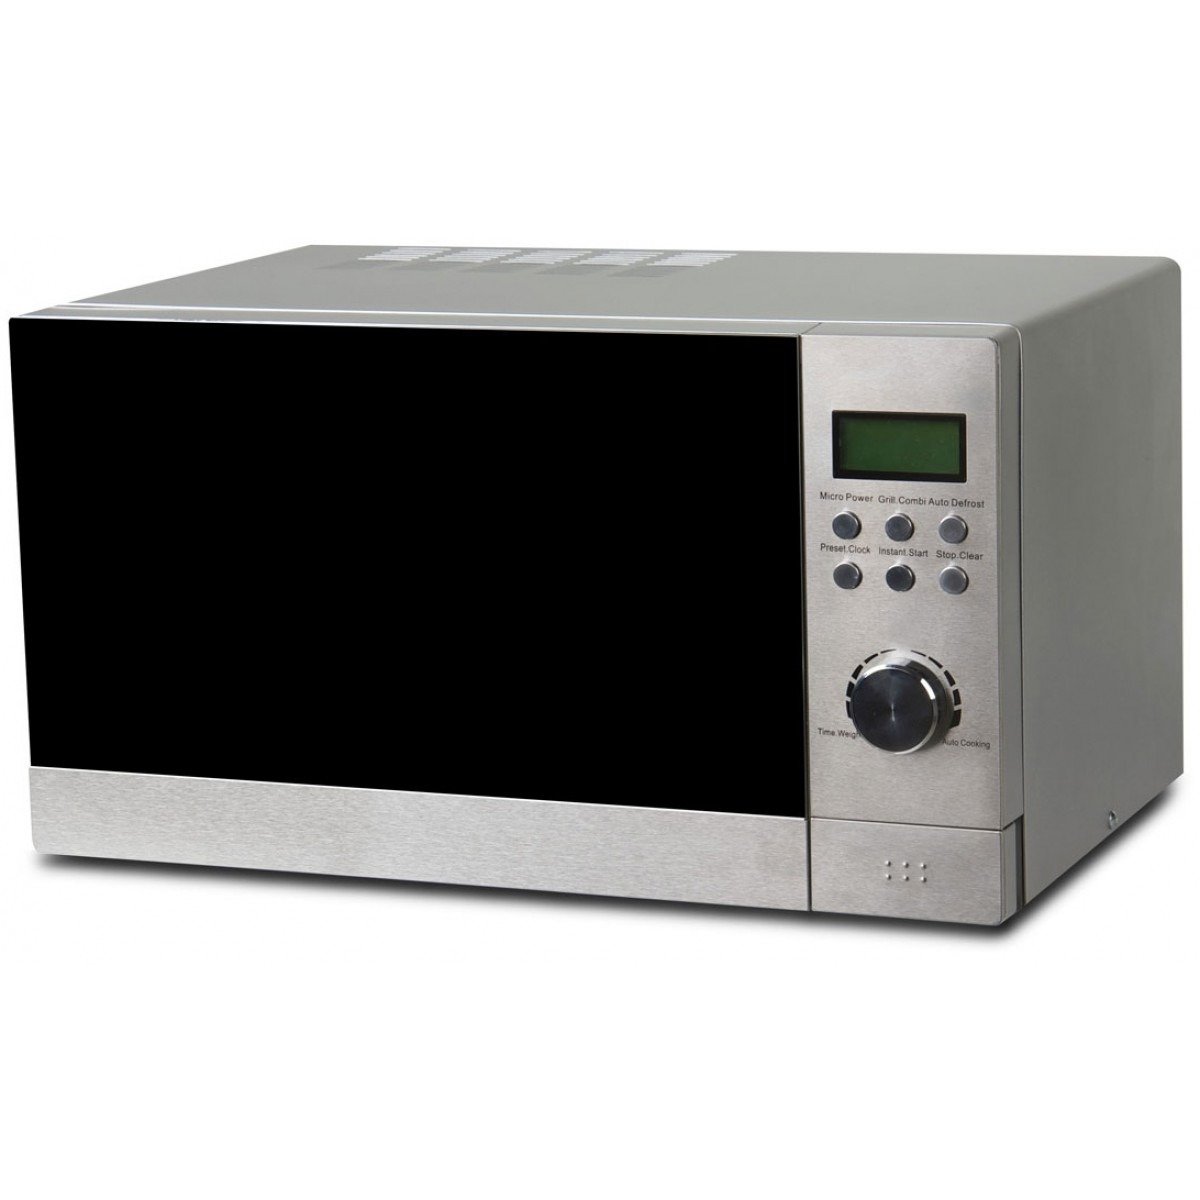 Haier 23l Free Standing Microwave Oven